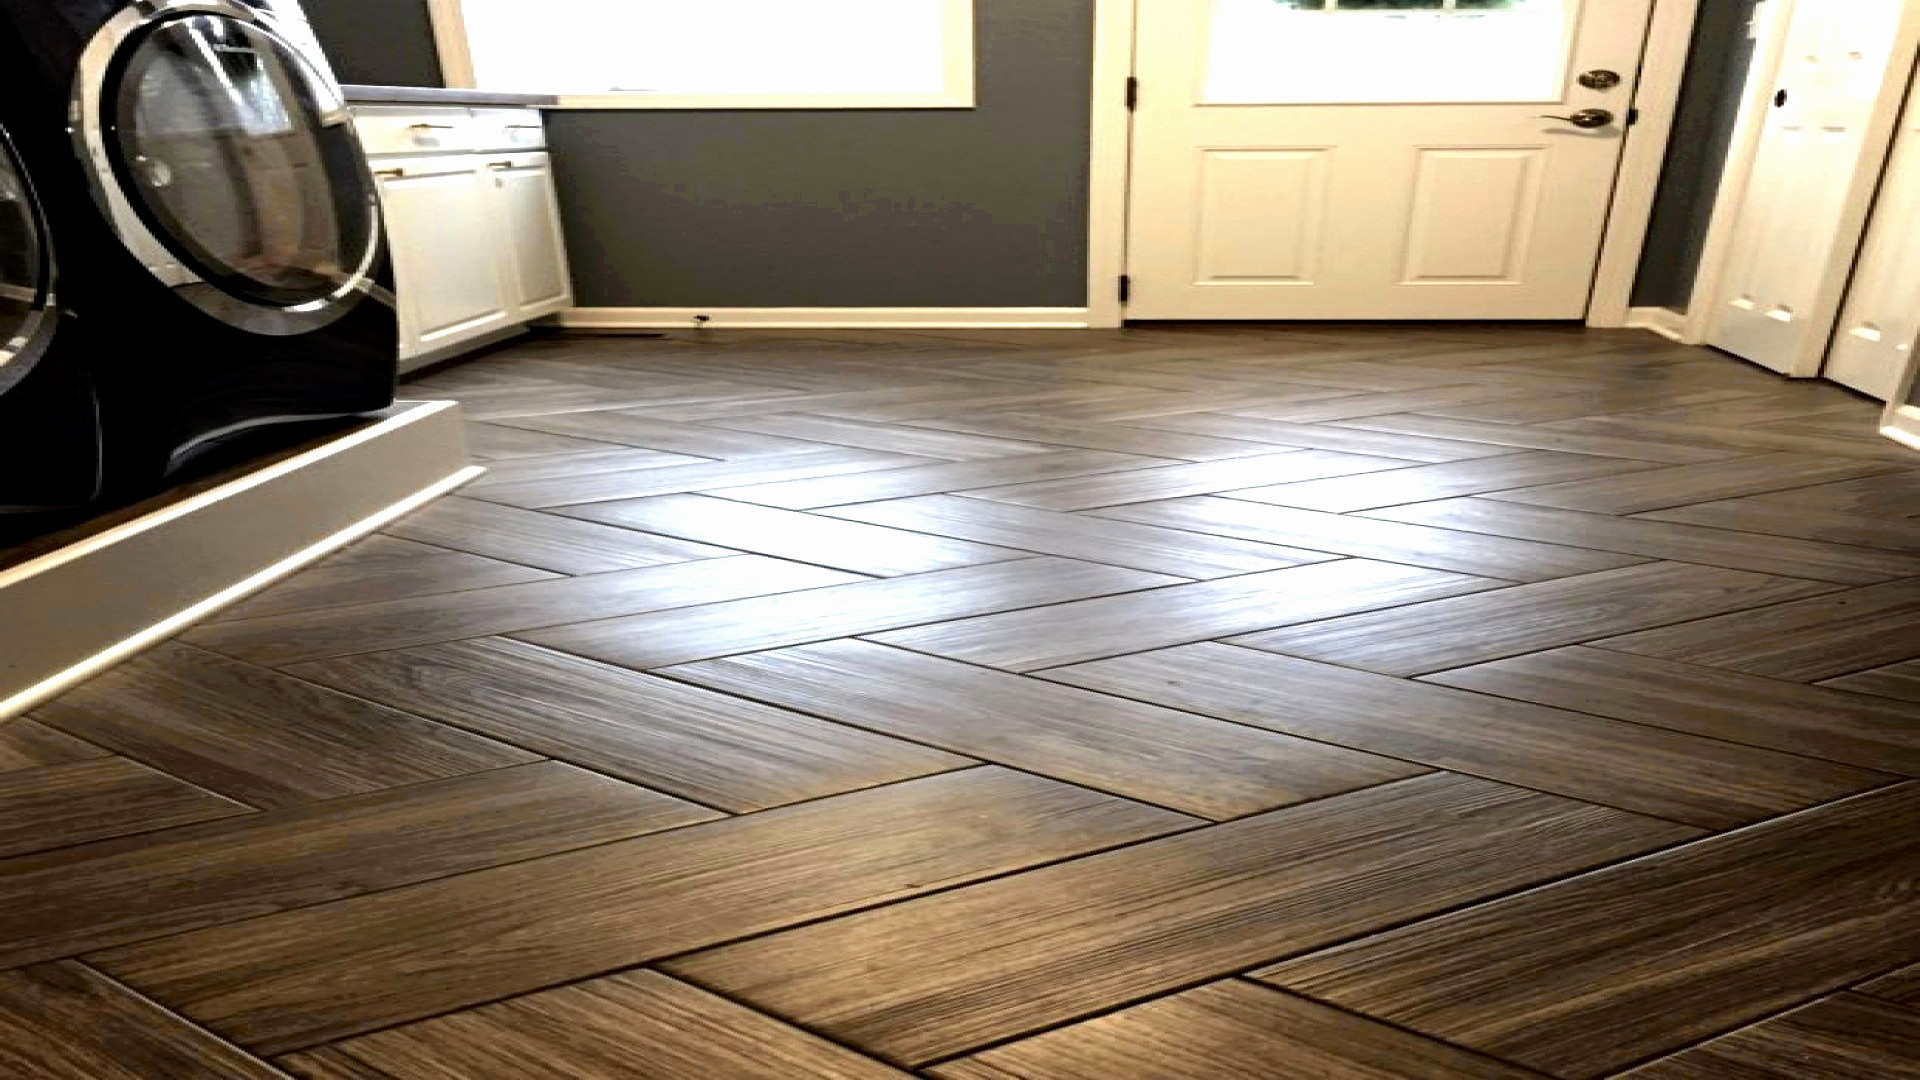 13 Perfect Hardwood Flooring Cost Per Sq Ft Installed 2021 free download hardwood flooring cost per sq ft installed of flooring cost best wood floor stain elegant cost for new kitchen throughout flooring cost 4305 laminate flooring cost 50 luxury vinyl flooring c